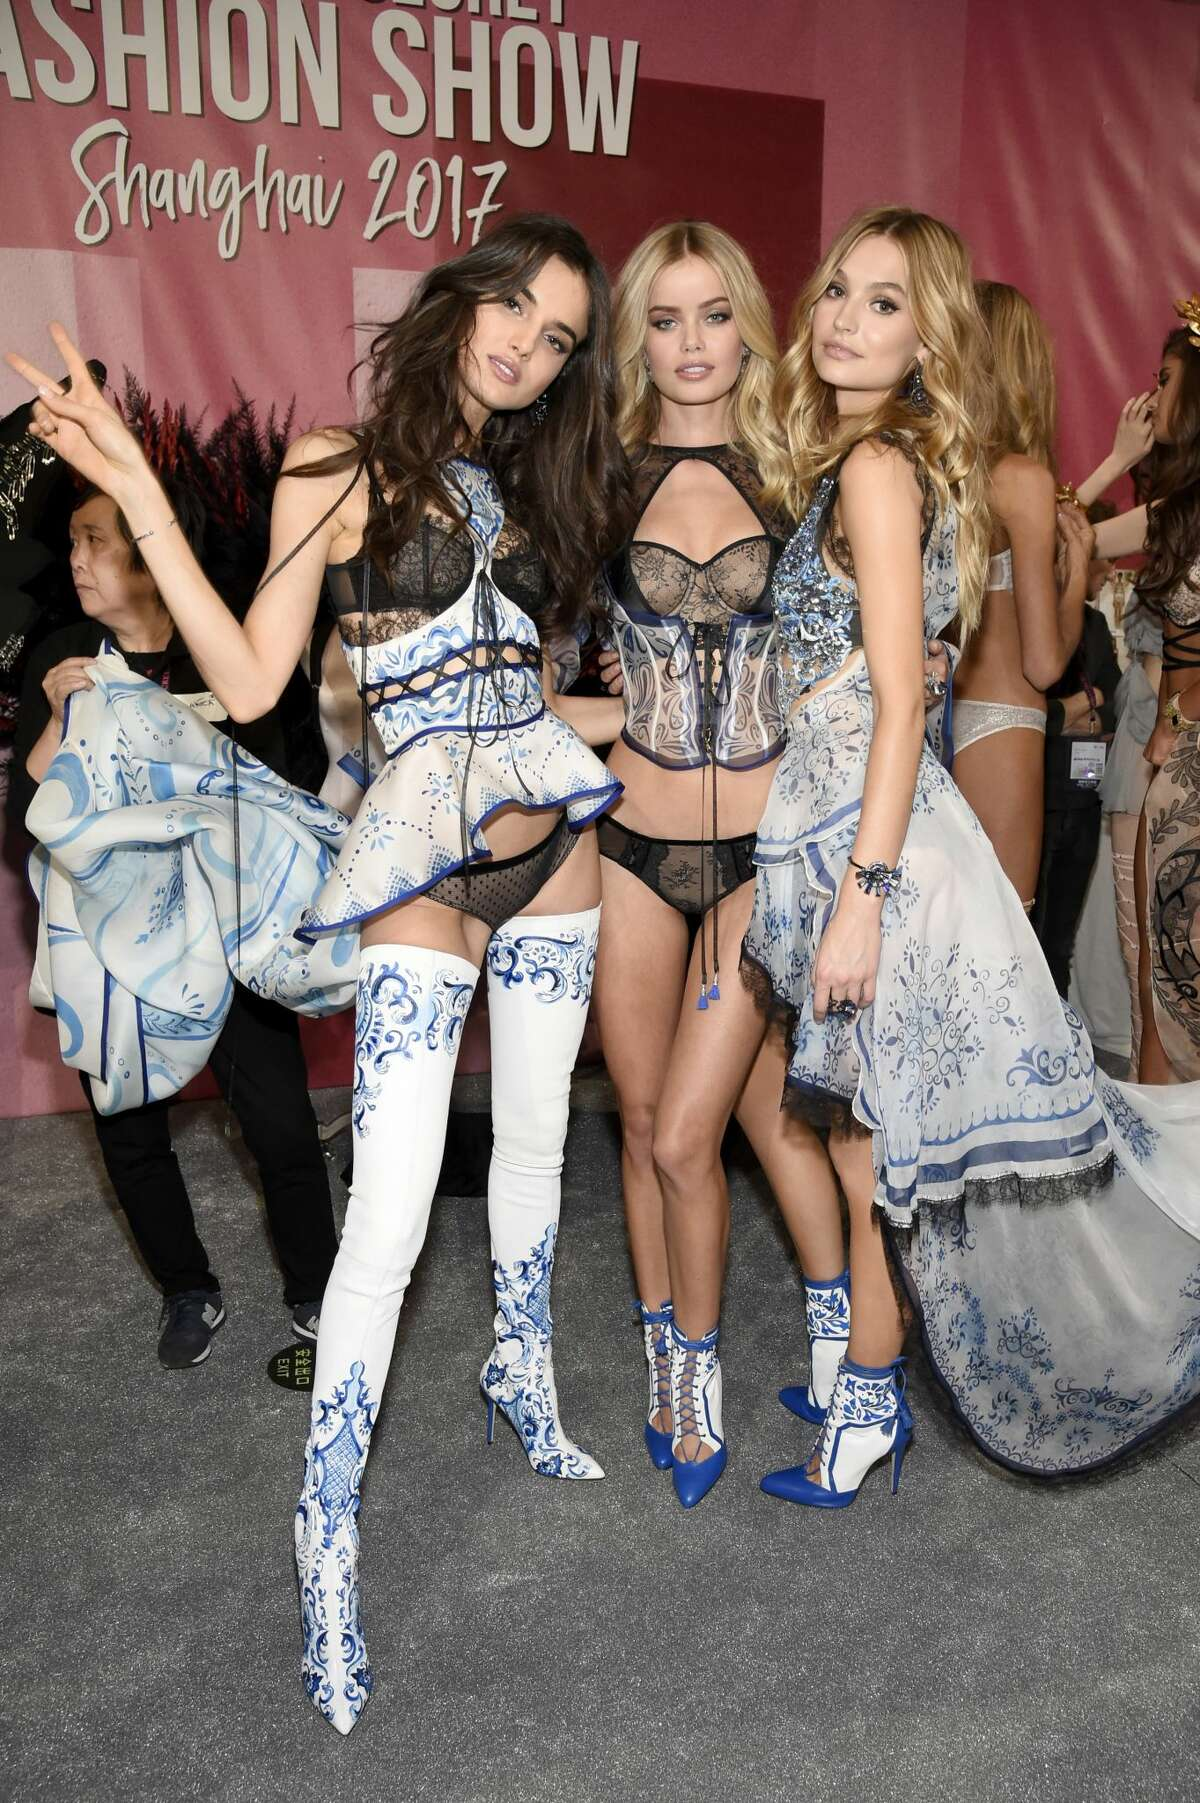 SHANGHAI, CHINA - NOVEMBER 20: Blanca Padilla, Frida Aasen and Roosmarijn de Kok pose backstage during 2017 Victoria's Secret Fashion Show In Shanghai at Mercedes-Benz Arena on November 20, 2017 in Shanghai, China. (Photo by Kevin Mazur/Getty Images for Victoria's Secret)